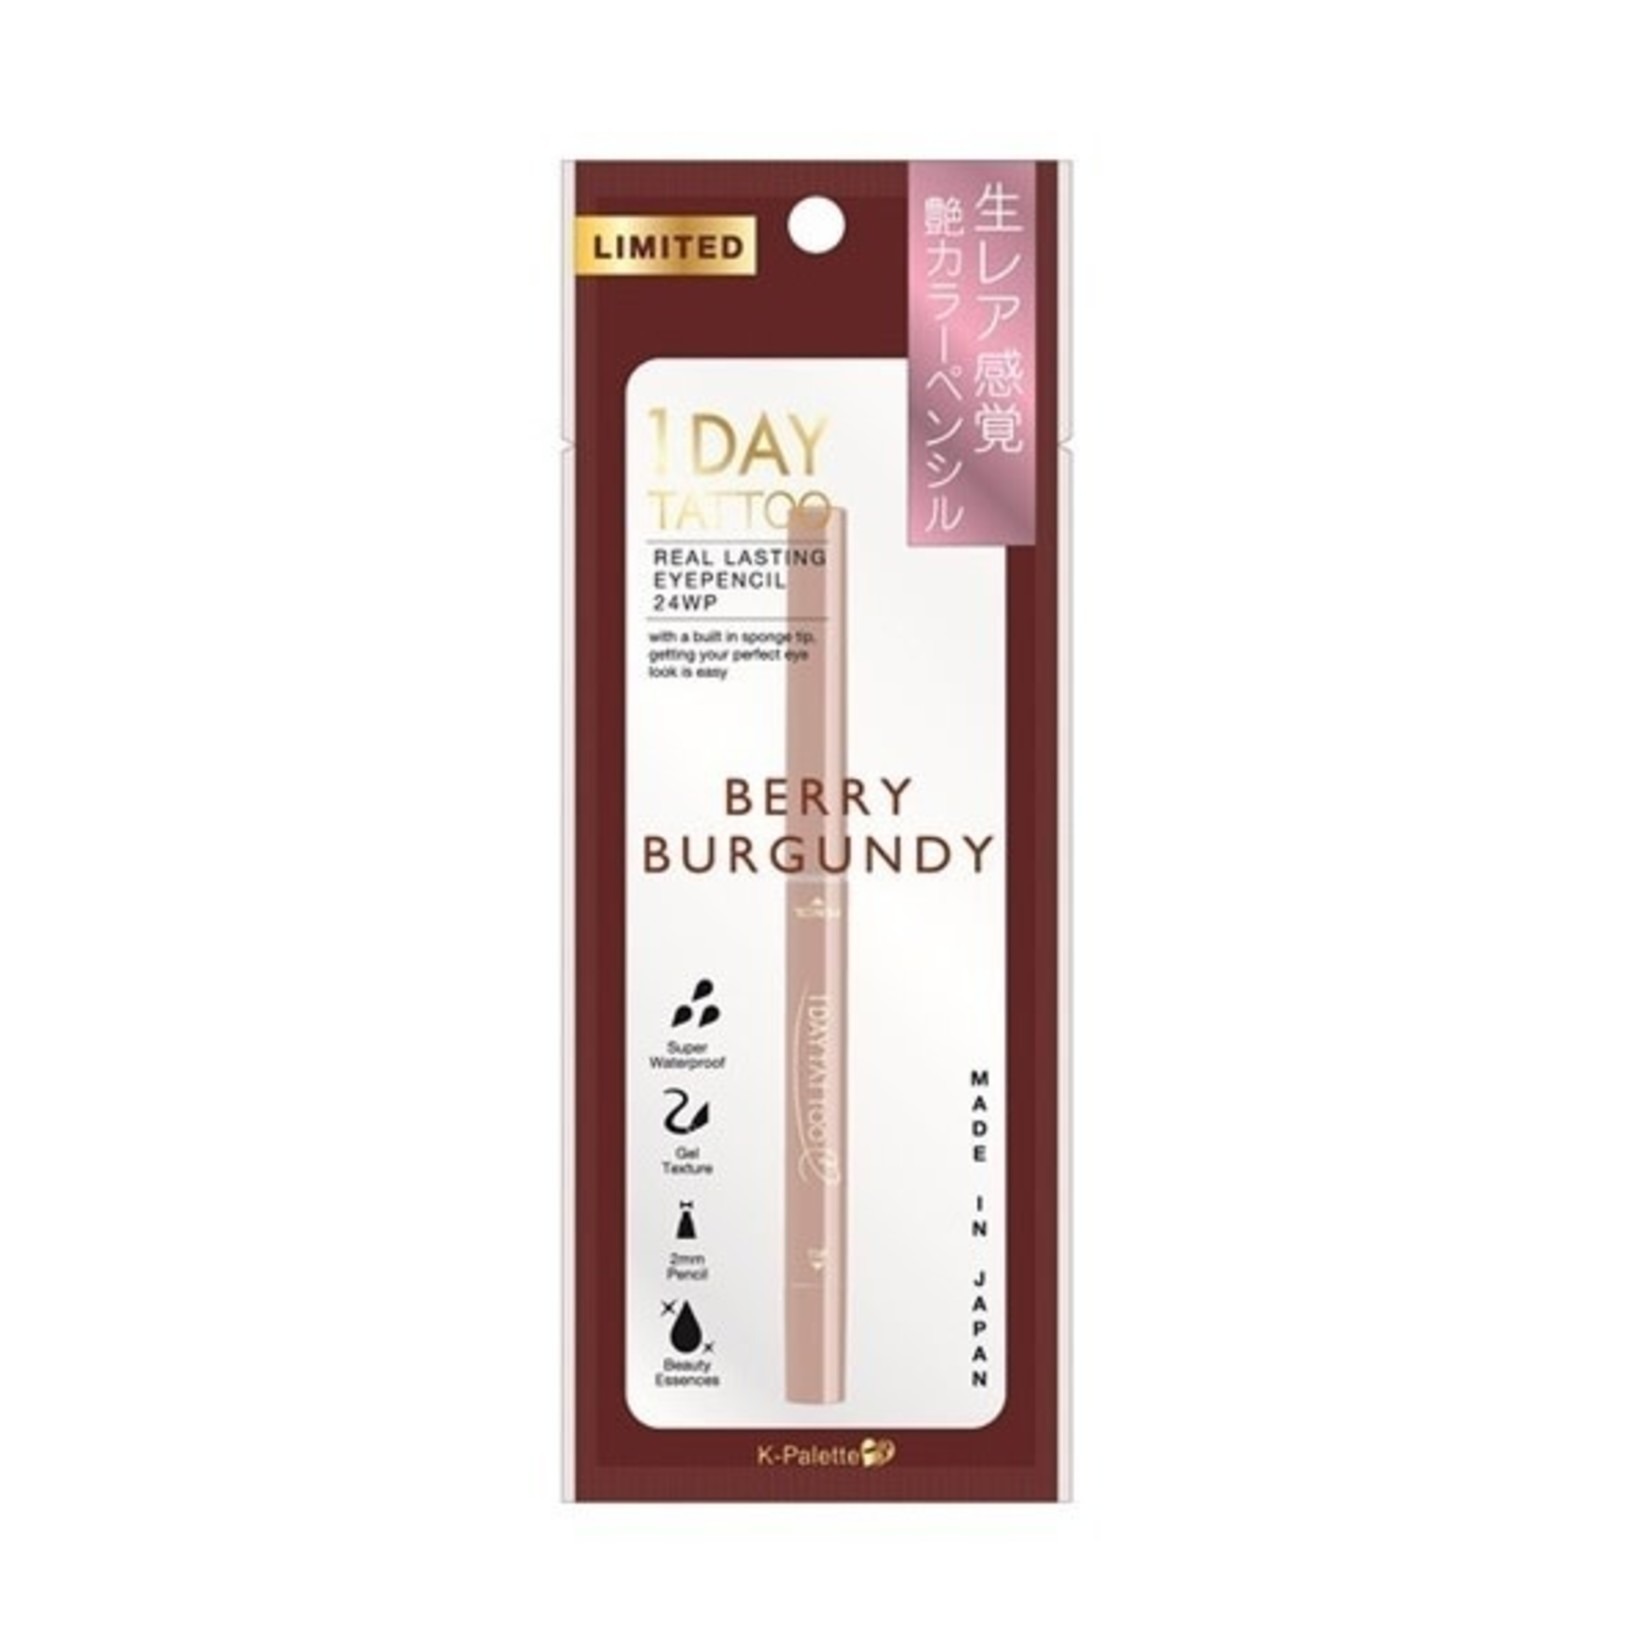 K-Palette K-Palette Real Lasting Eyepencil 24h WP Limited Shade